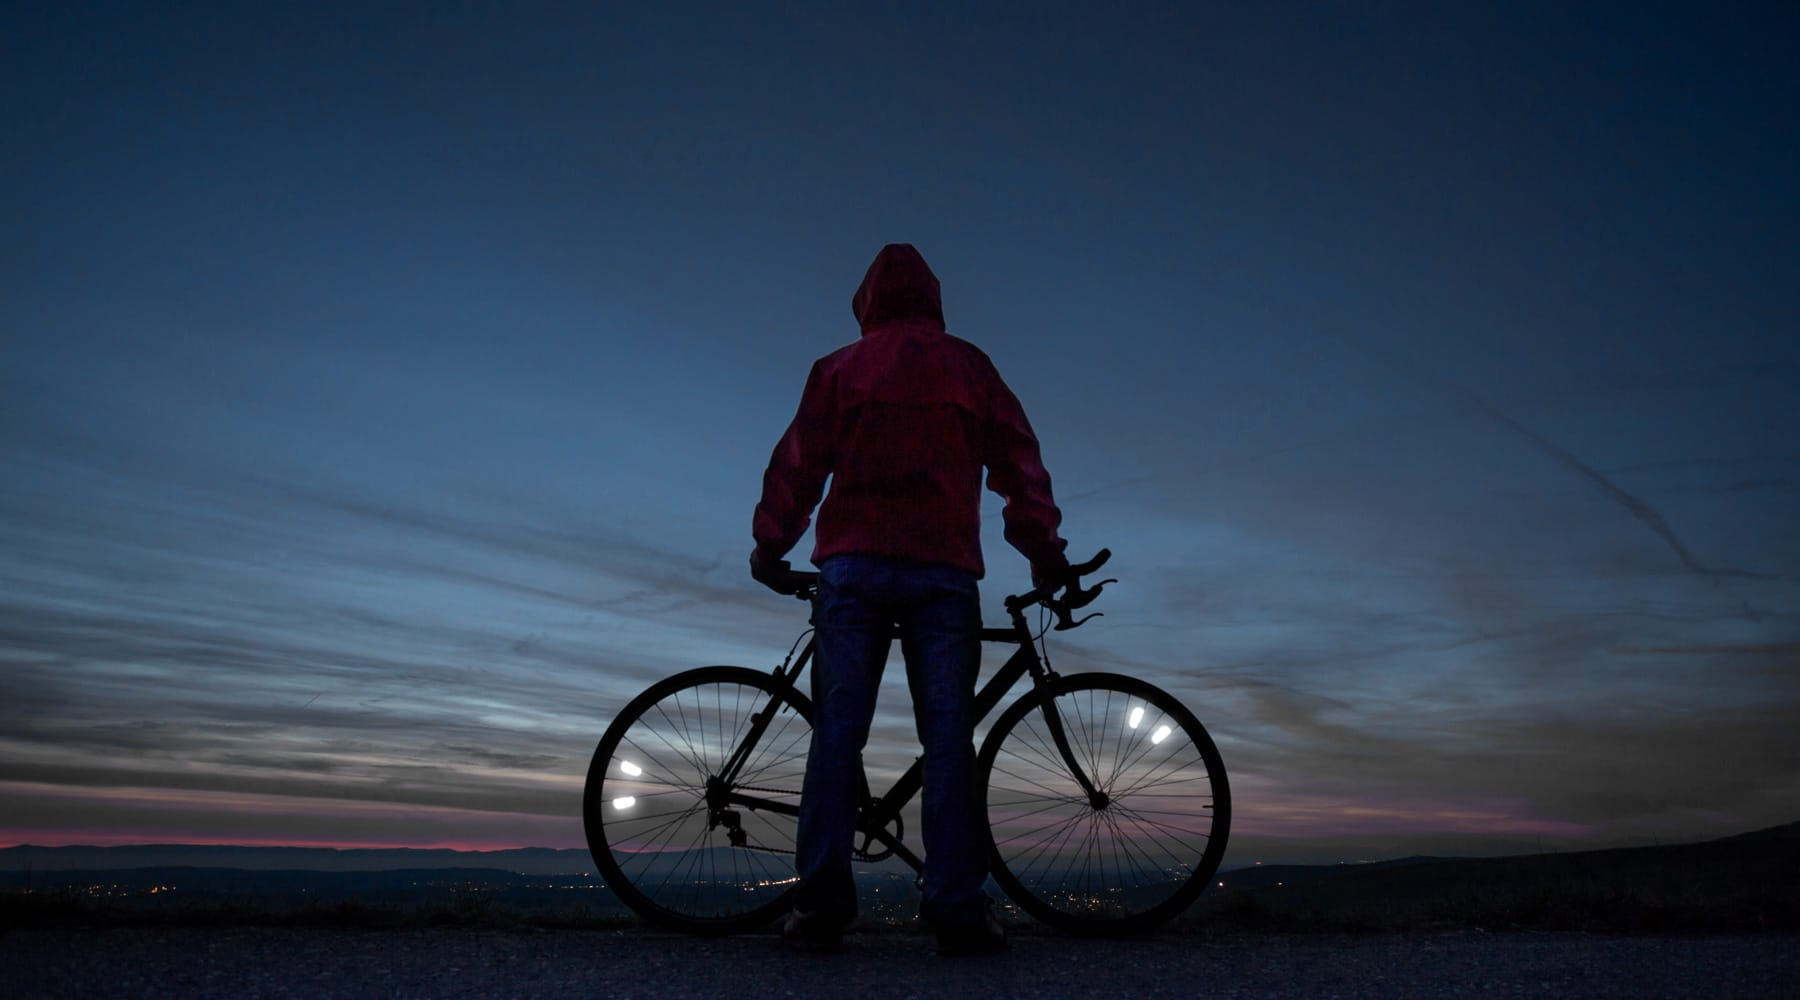 flectr zero cycling in the dark desert of california